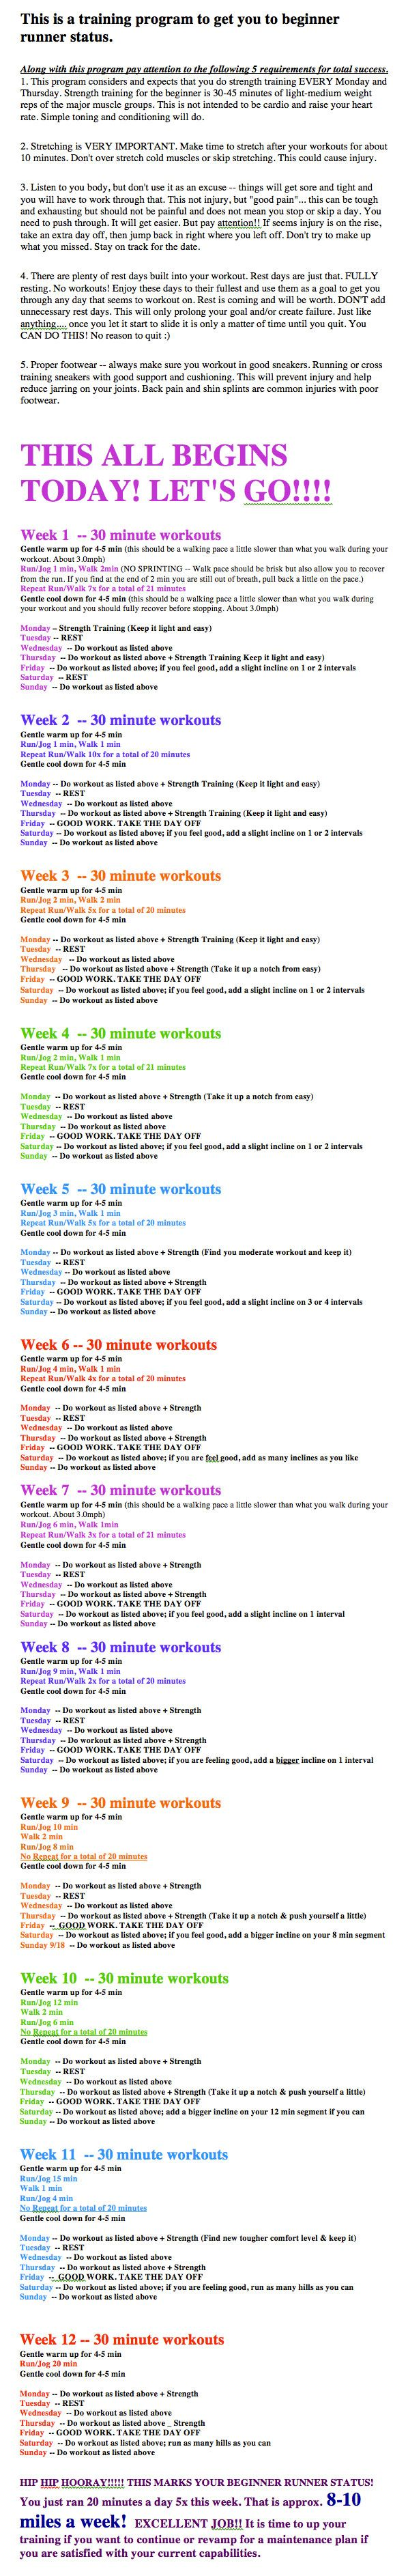 How to get the most out of your 2012 resolution on the treadmill or outside. This is a plan for those who are not runners, but want to be. Or for those who just need to start slow and build cardio capabilities for a better quality of life. Rarely do you f (How To Do A Fast Diet)